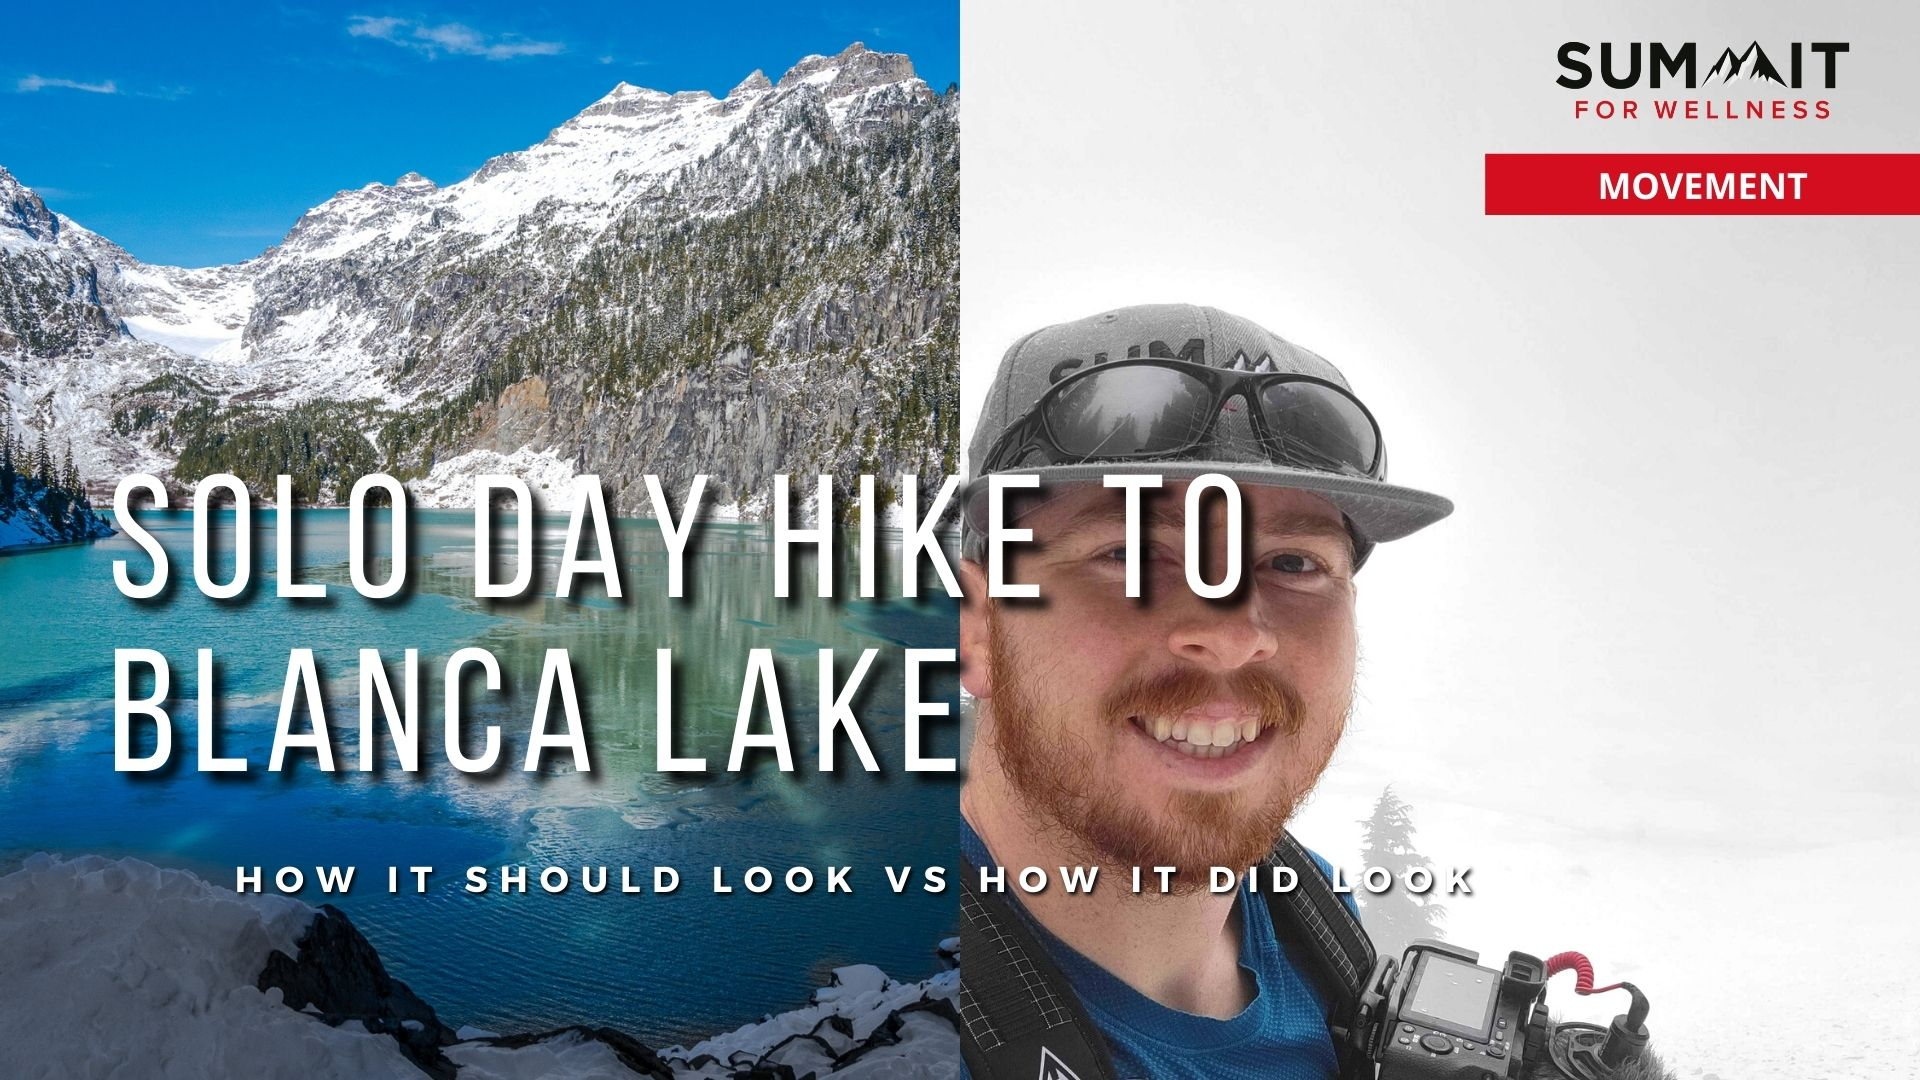 Views of Blanca Lake from 2019 to 2021